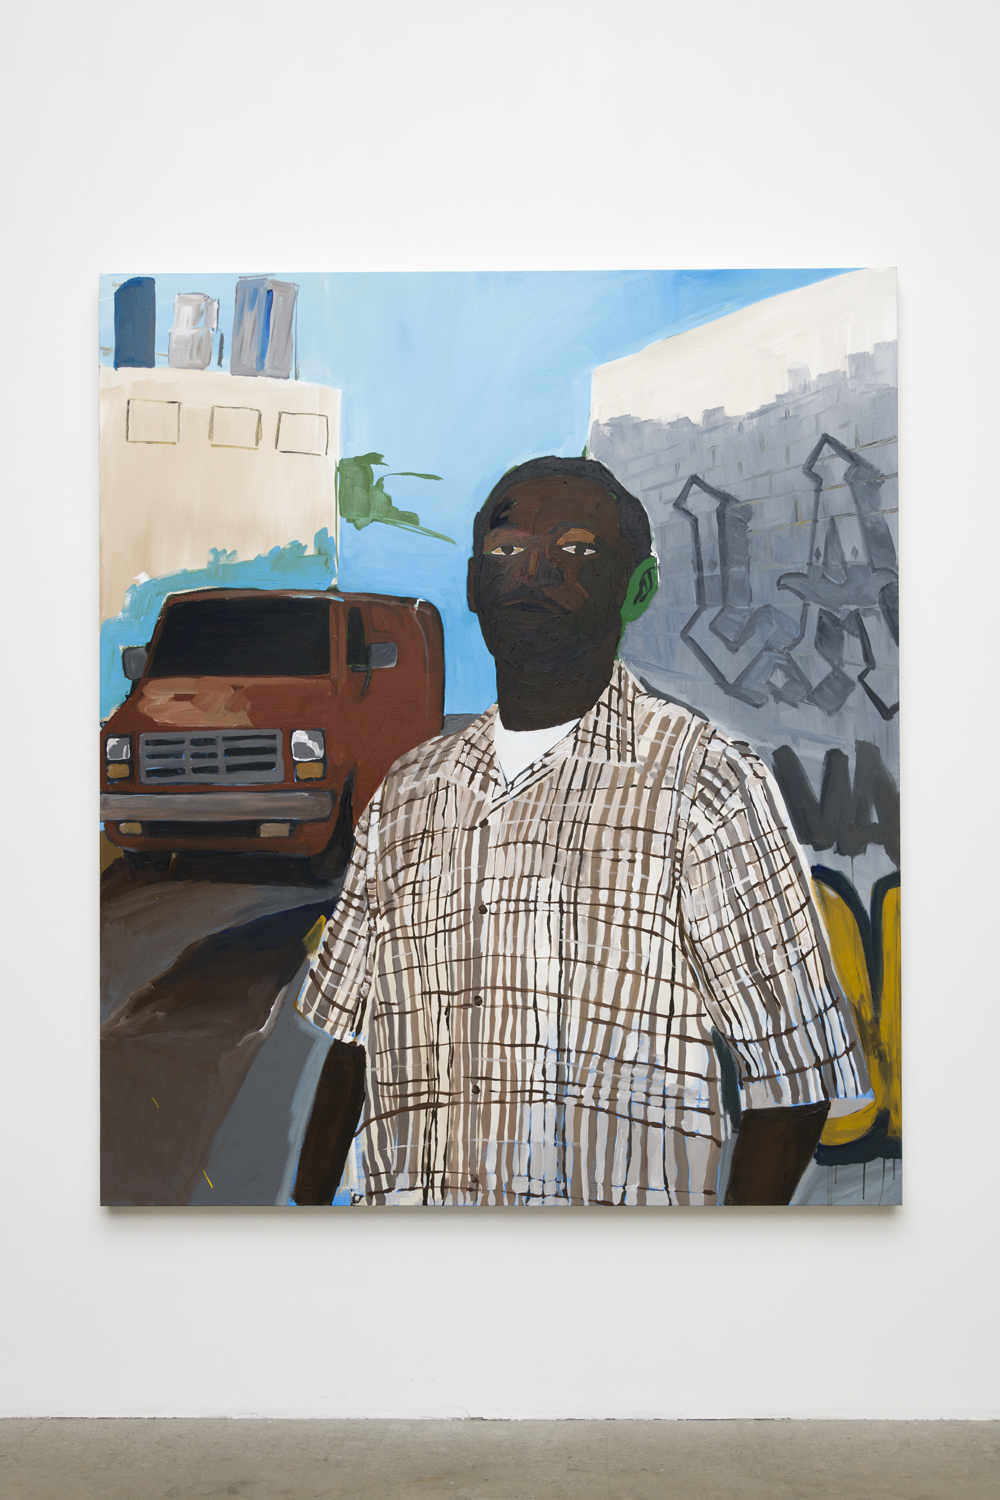 In this painting by the artist Henry Taylor, a male person of color is standing in the foreground. His left ear is painted green, and he is wearing an off white checkered shirt. Over his left shoulder is a brown van parked on the street, while over his right shoulder is a wall with graffiti that says,